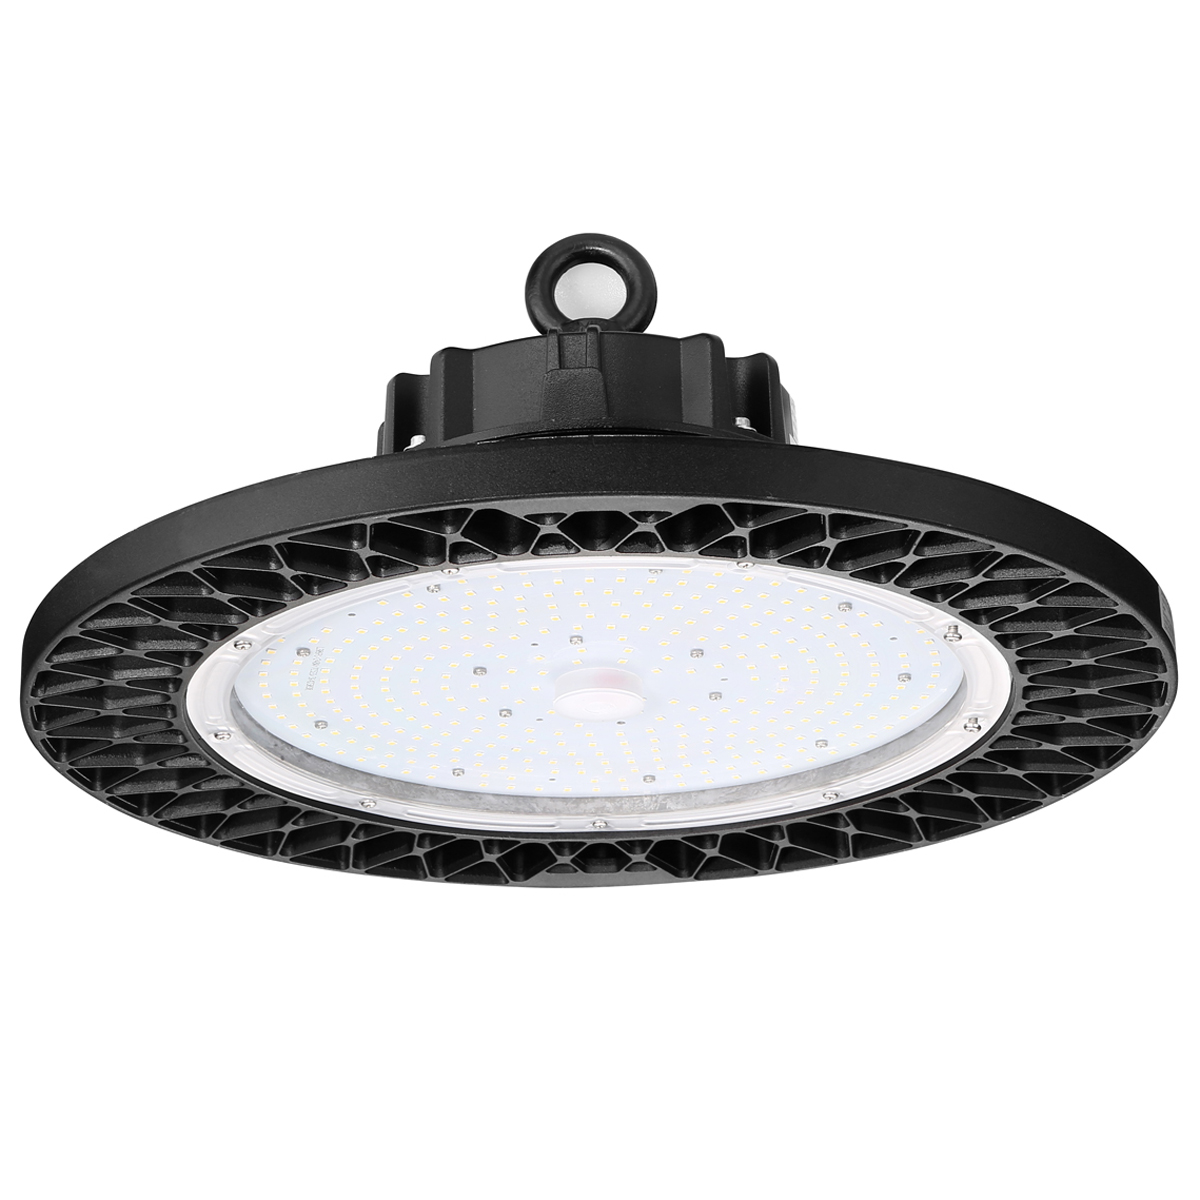 hight resolution of 240w 31200lm ufo commercial high bay led lighting 500w mh equiv warehouse lighting le